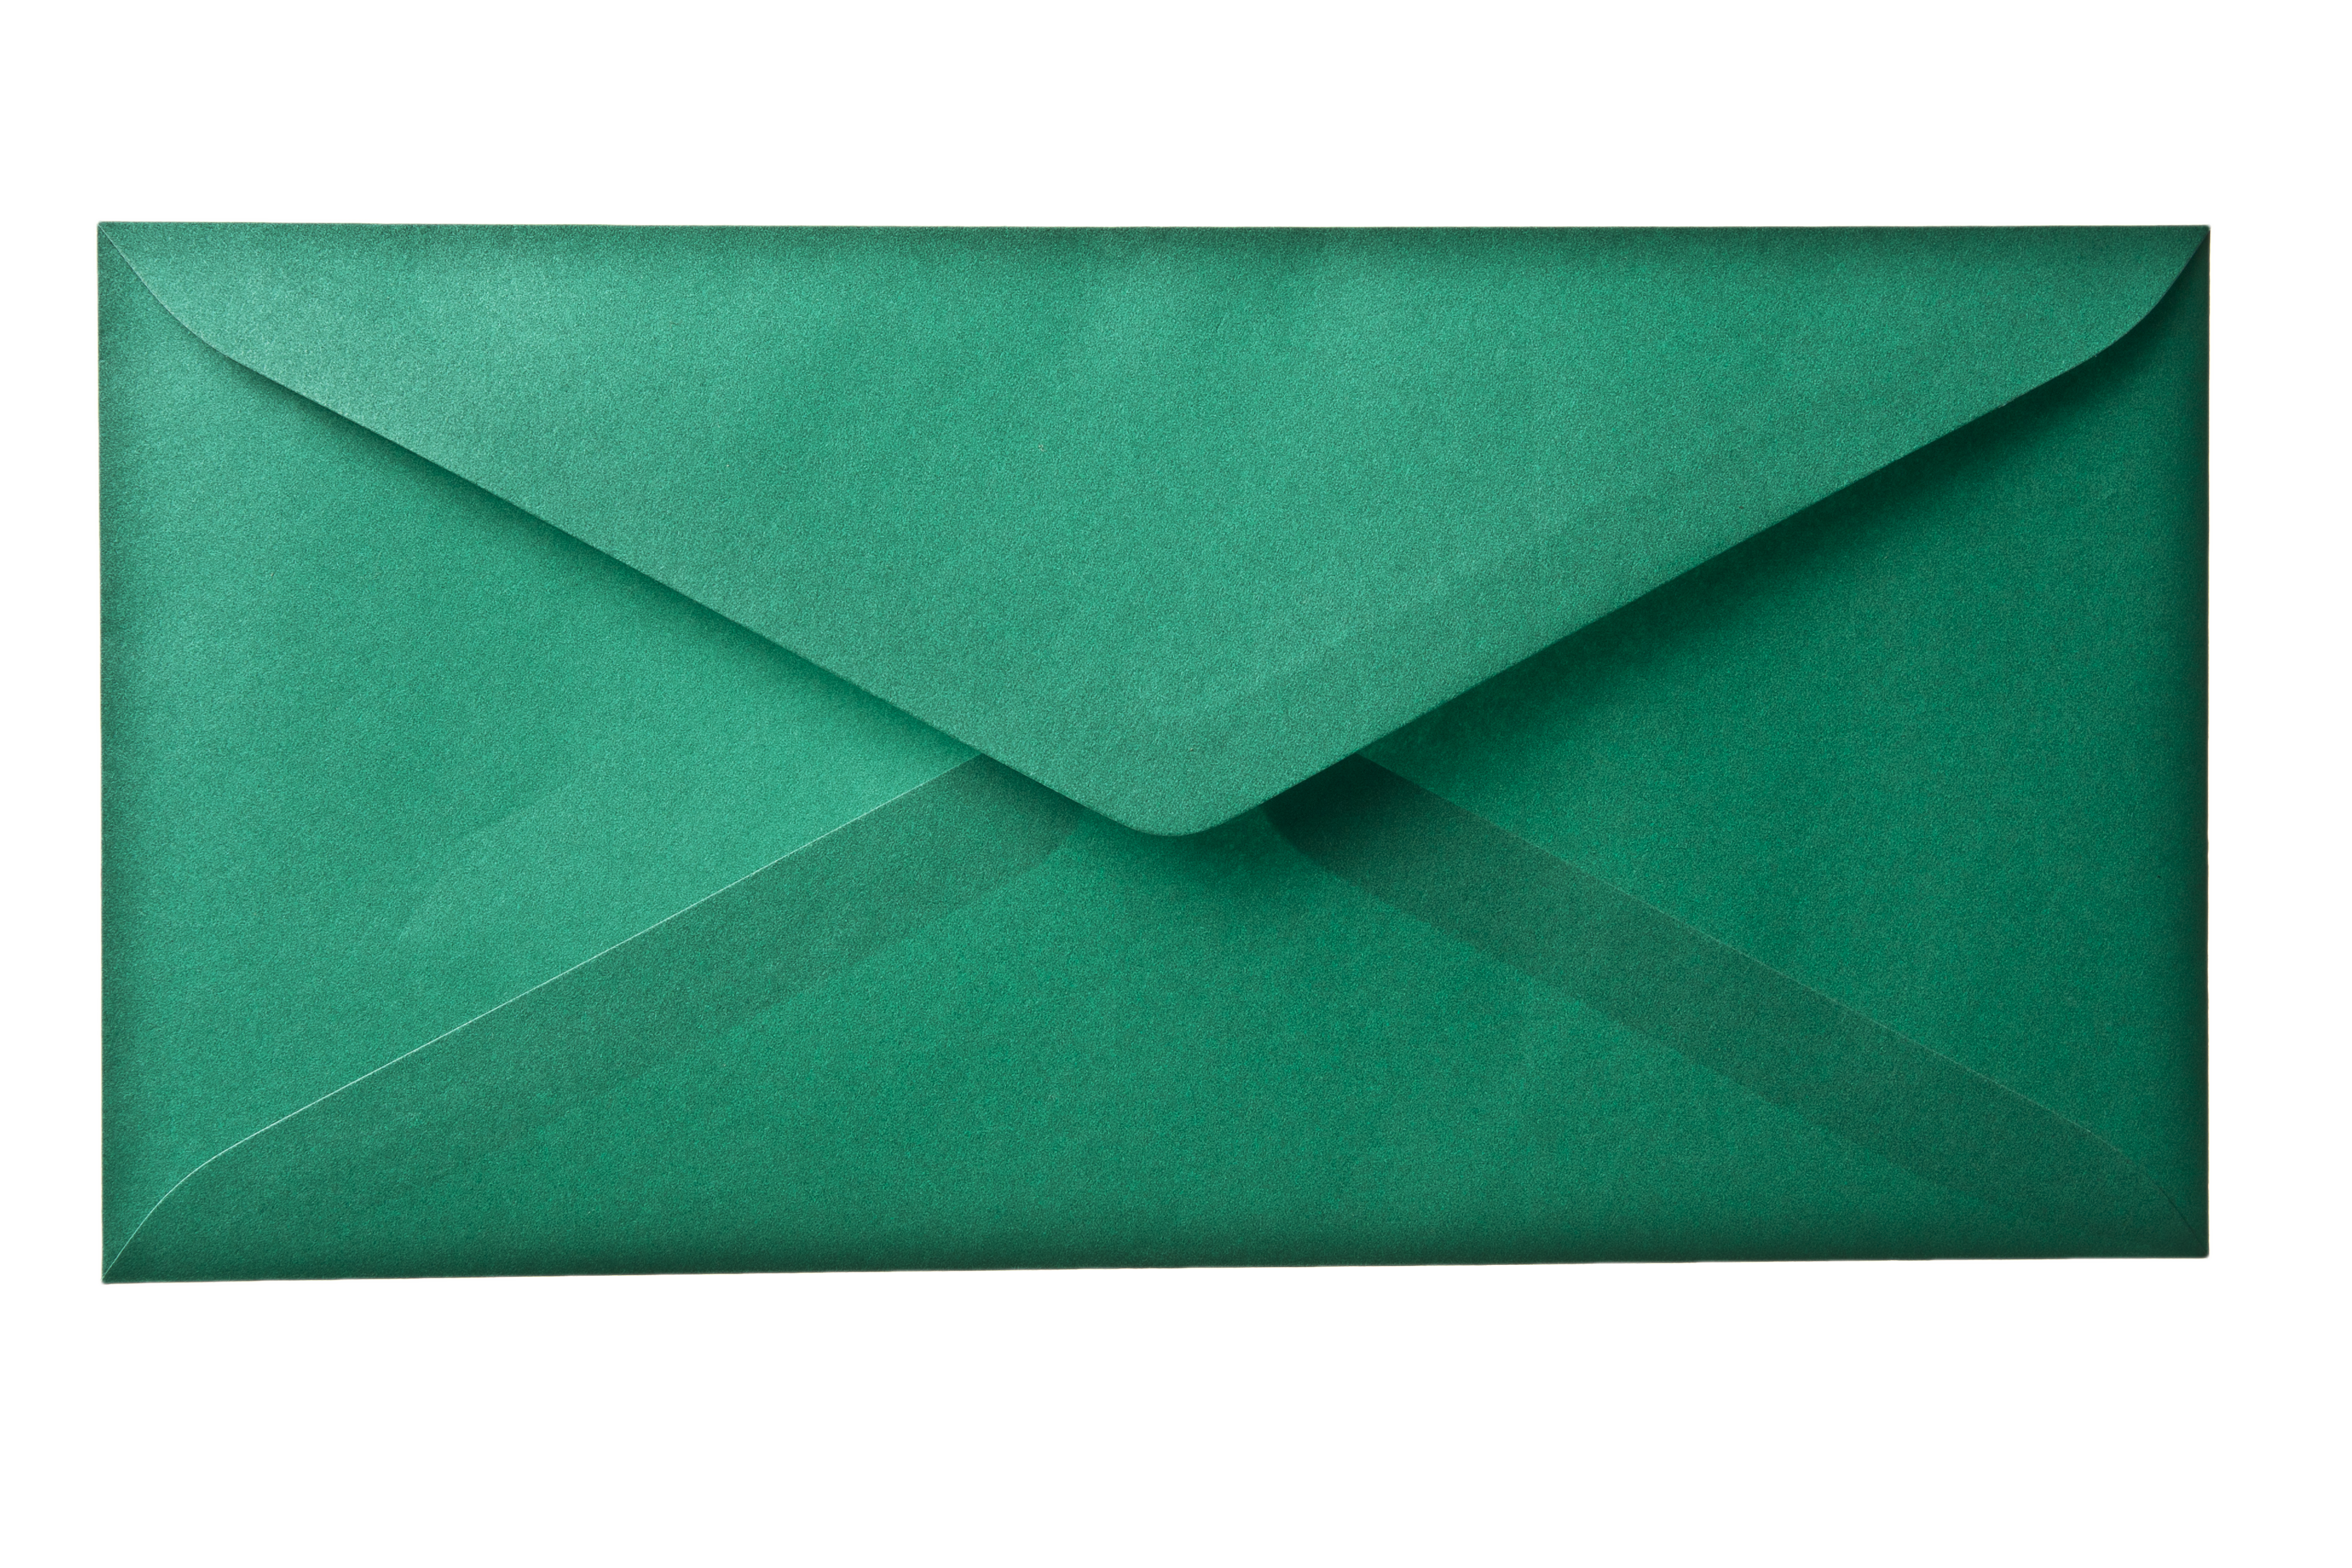 Envelope transparent paper. Backgrounds green layer background